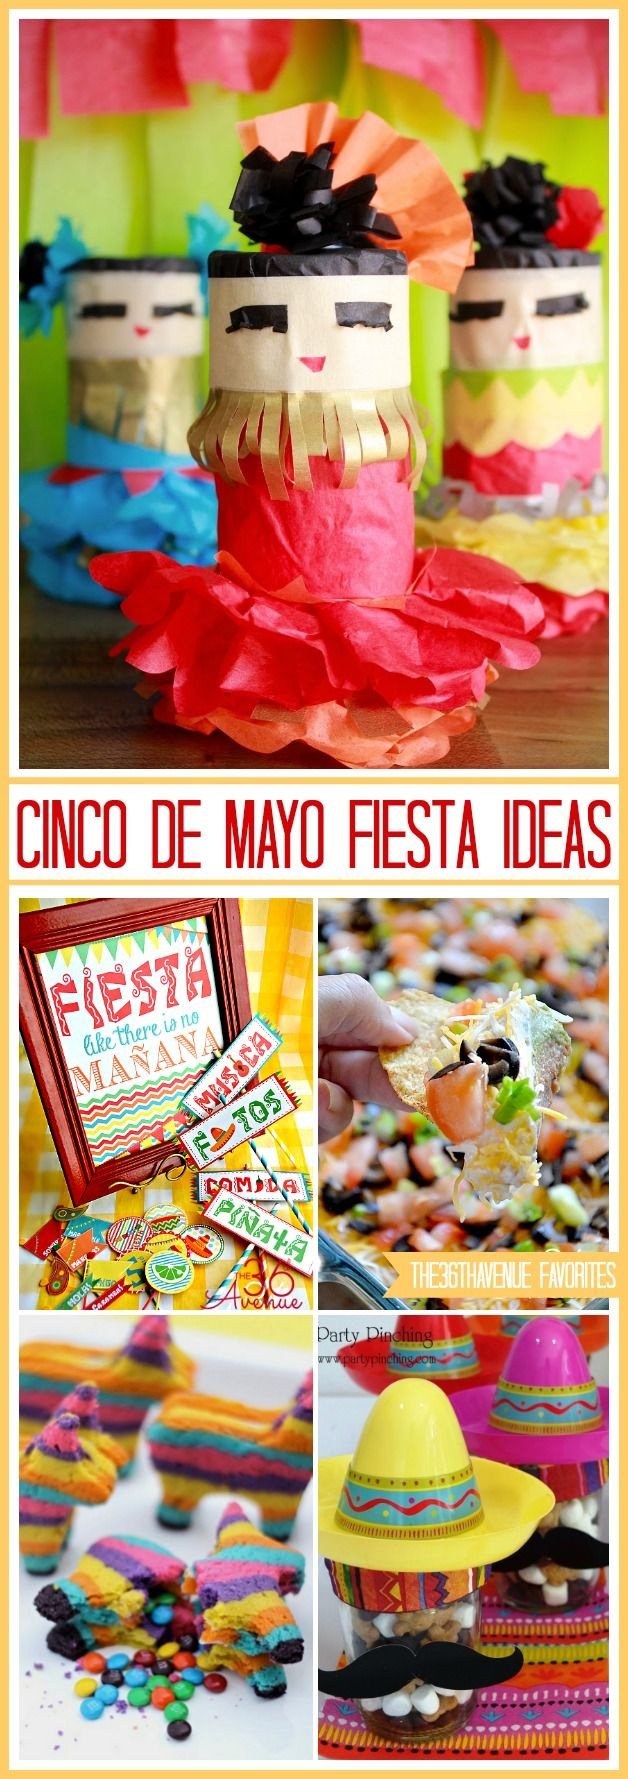 Mexican fiesta party decorating ideas hosting guide - Cinco De Mayo Fiesta Ideas At The36thavenue Com